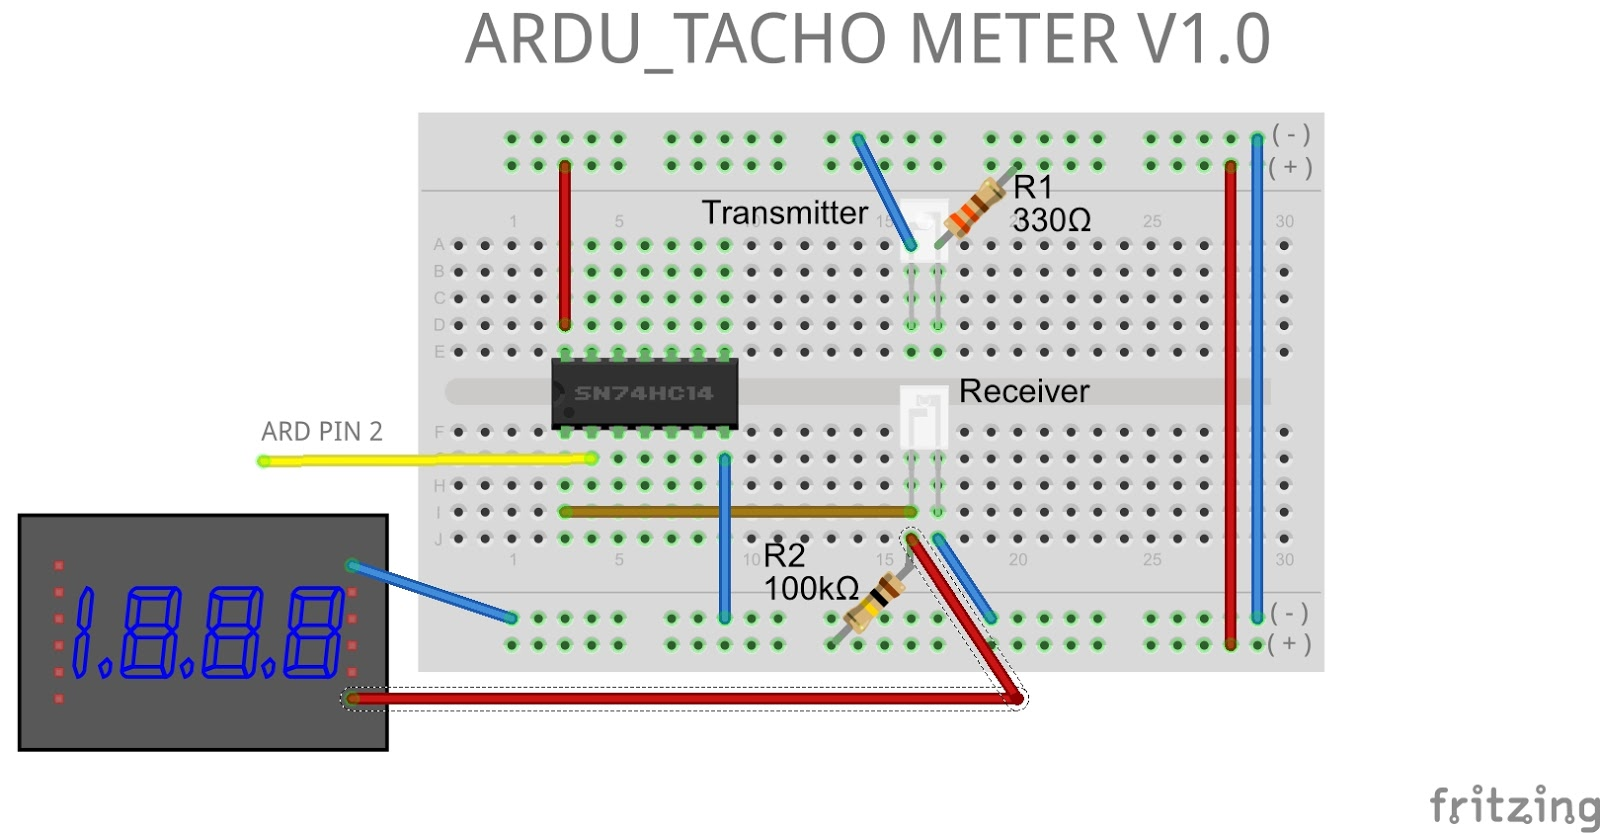 08 Arduserie Ardu Tacho Meter V10 Jungletronics Asymmetrical Inverting Schmitt Trigger Electronics Tutorial The Components Are 74hc14 330r 100k Ir Til78 Til32 Multimeter Cooler 12v 026a Arduino Uno And Curiosity